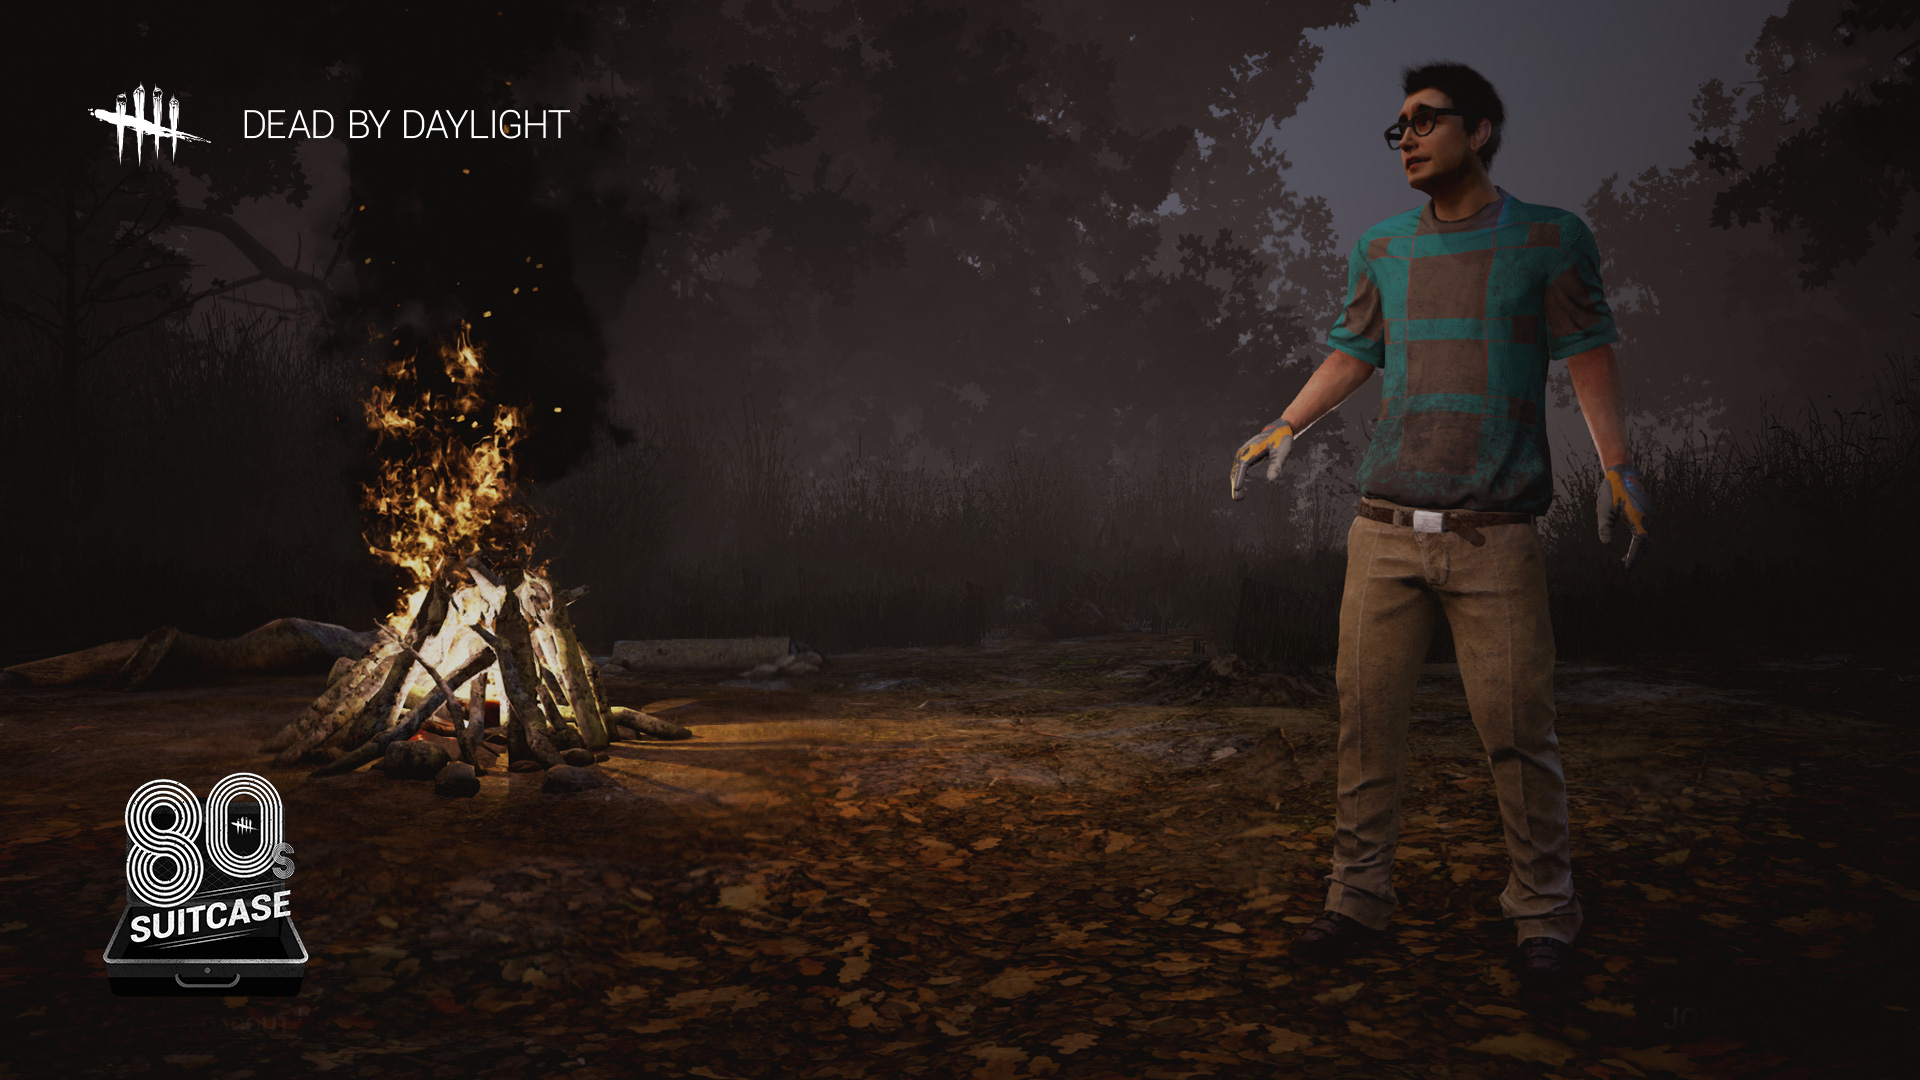 KHAiHOM.com - Dead by Daylight - The 80's Suitcase